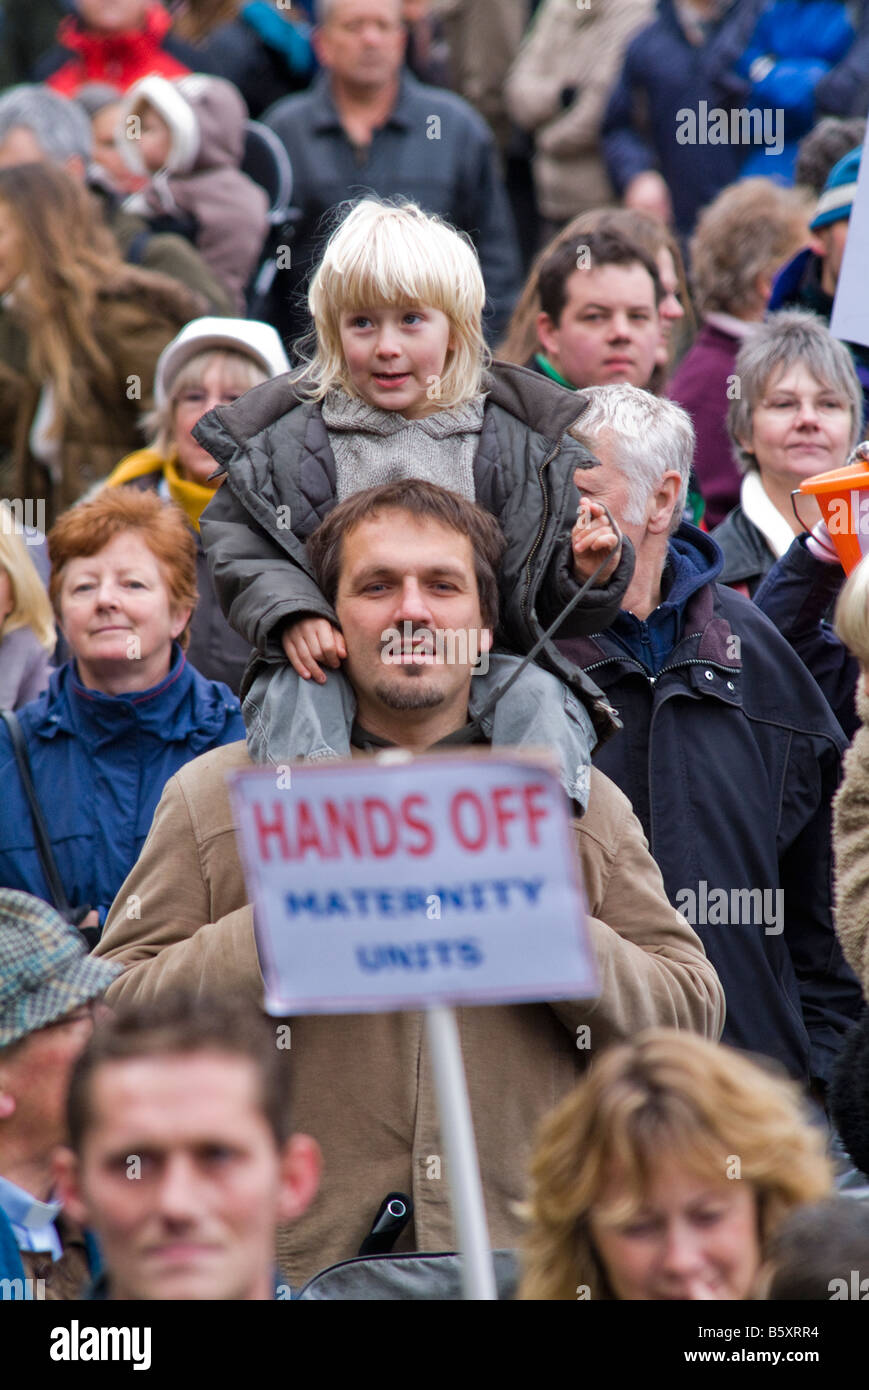 UNITED KINGDOM, ENGLAND, 17th November 2007. A man carries a child at a rally opposed to hospital cuts. - Stock Image